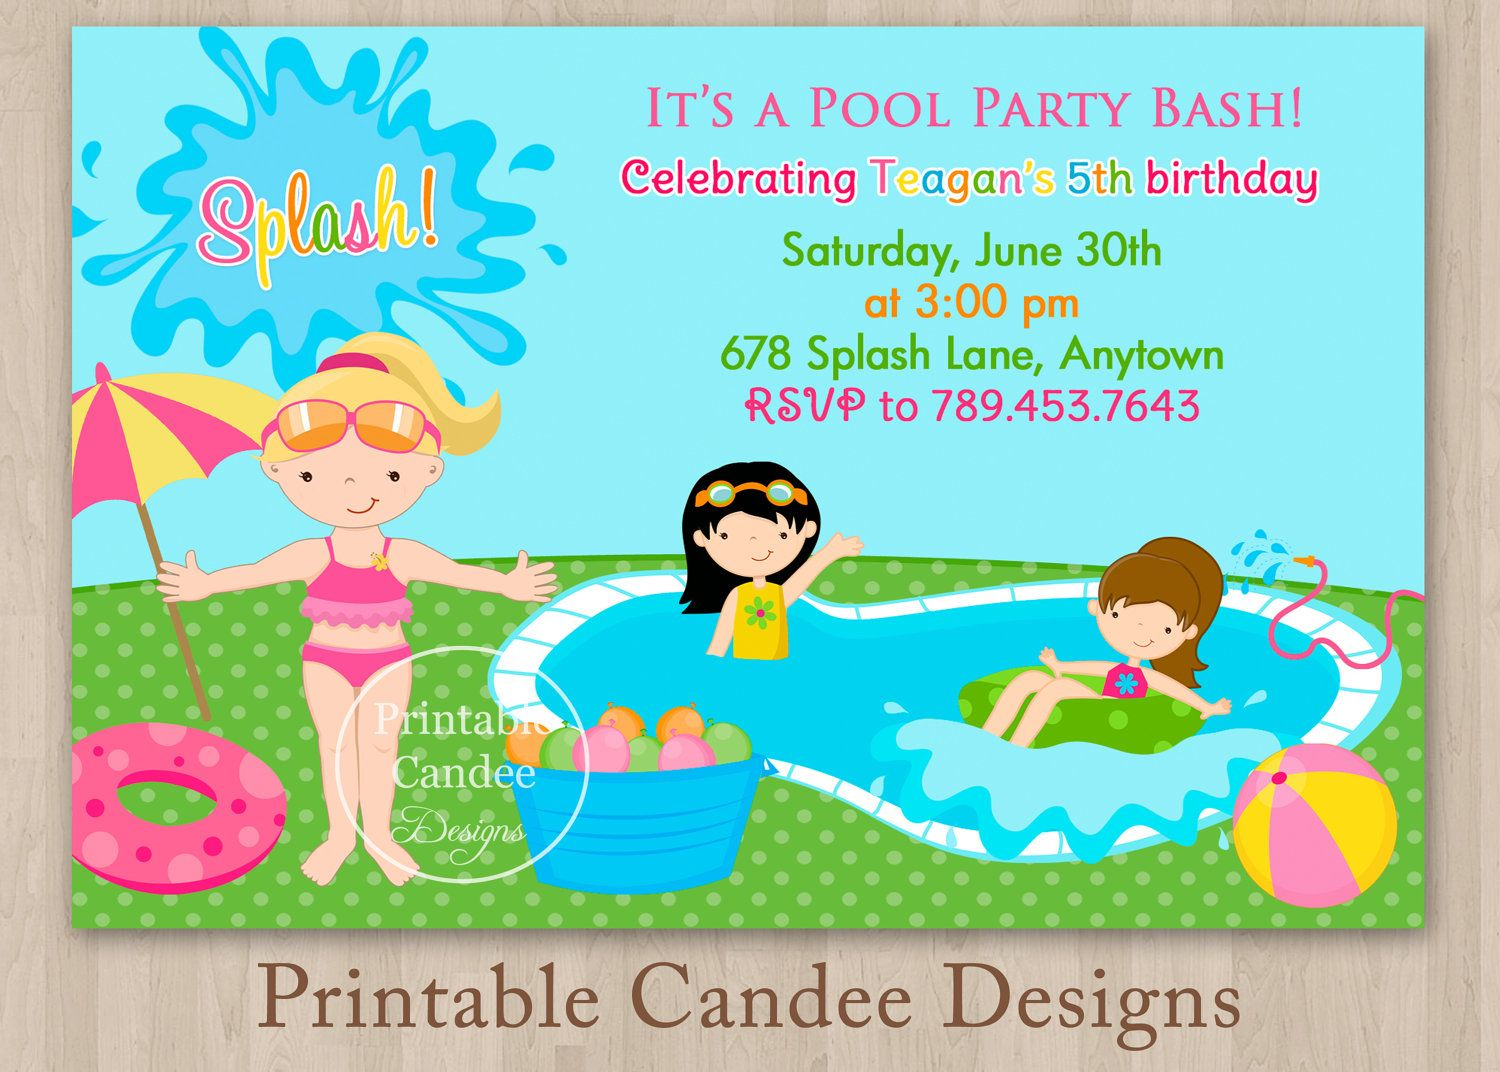 Pool Party Invitations For Kids Free Printable – Pool Party Invitation Templates Free Printable